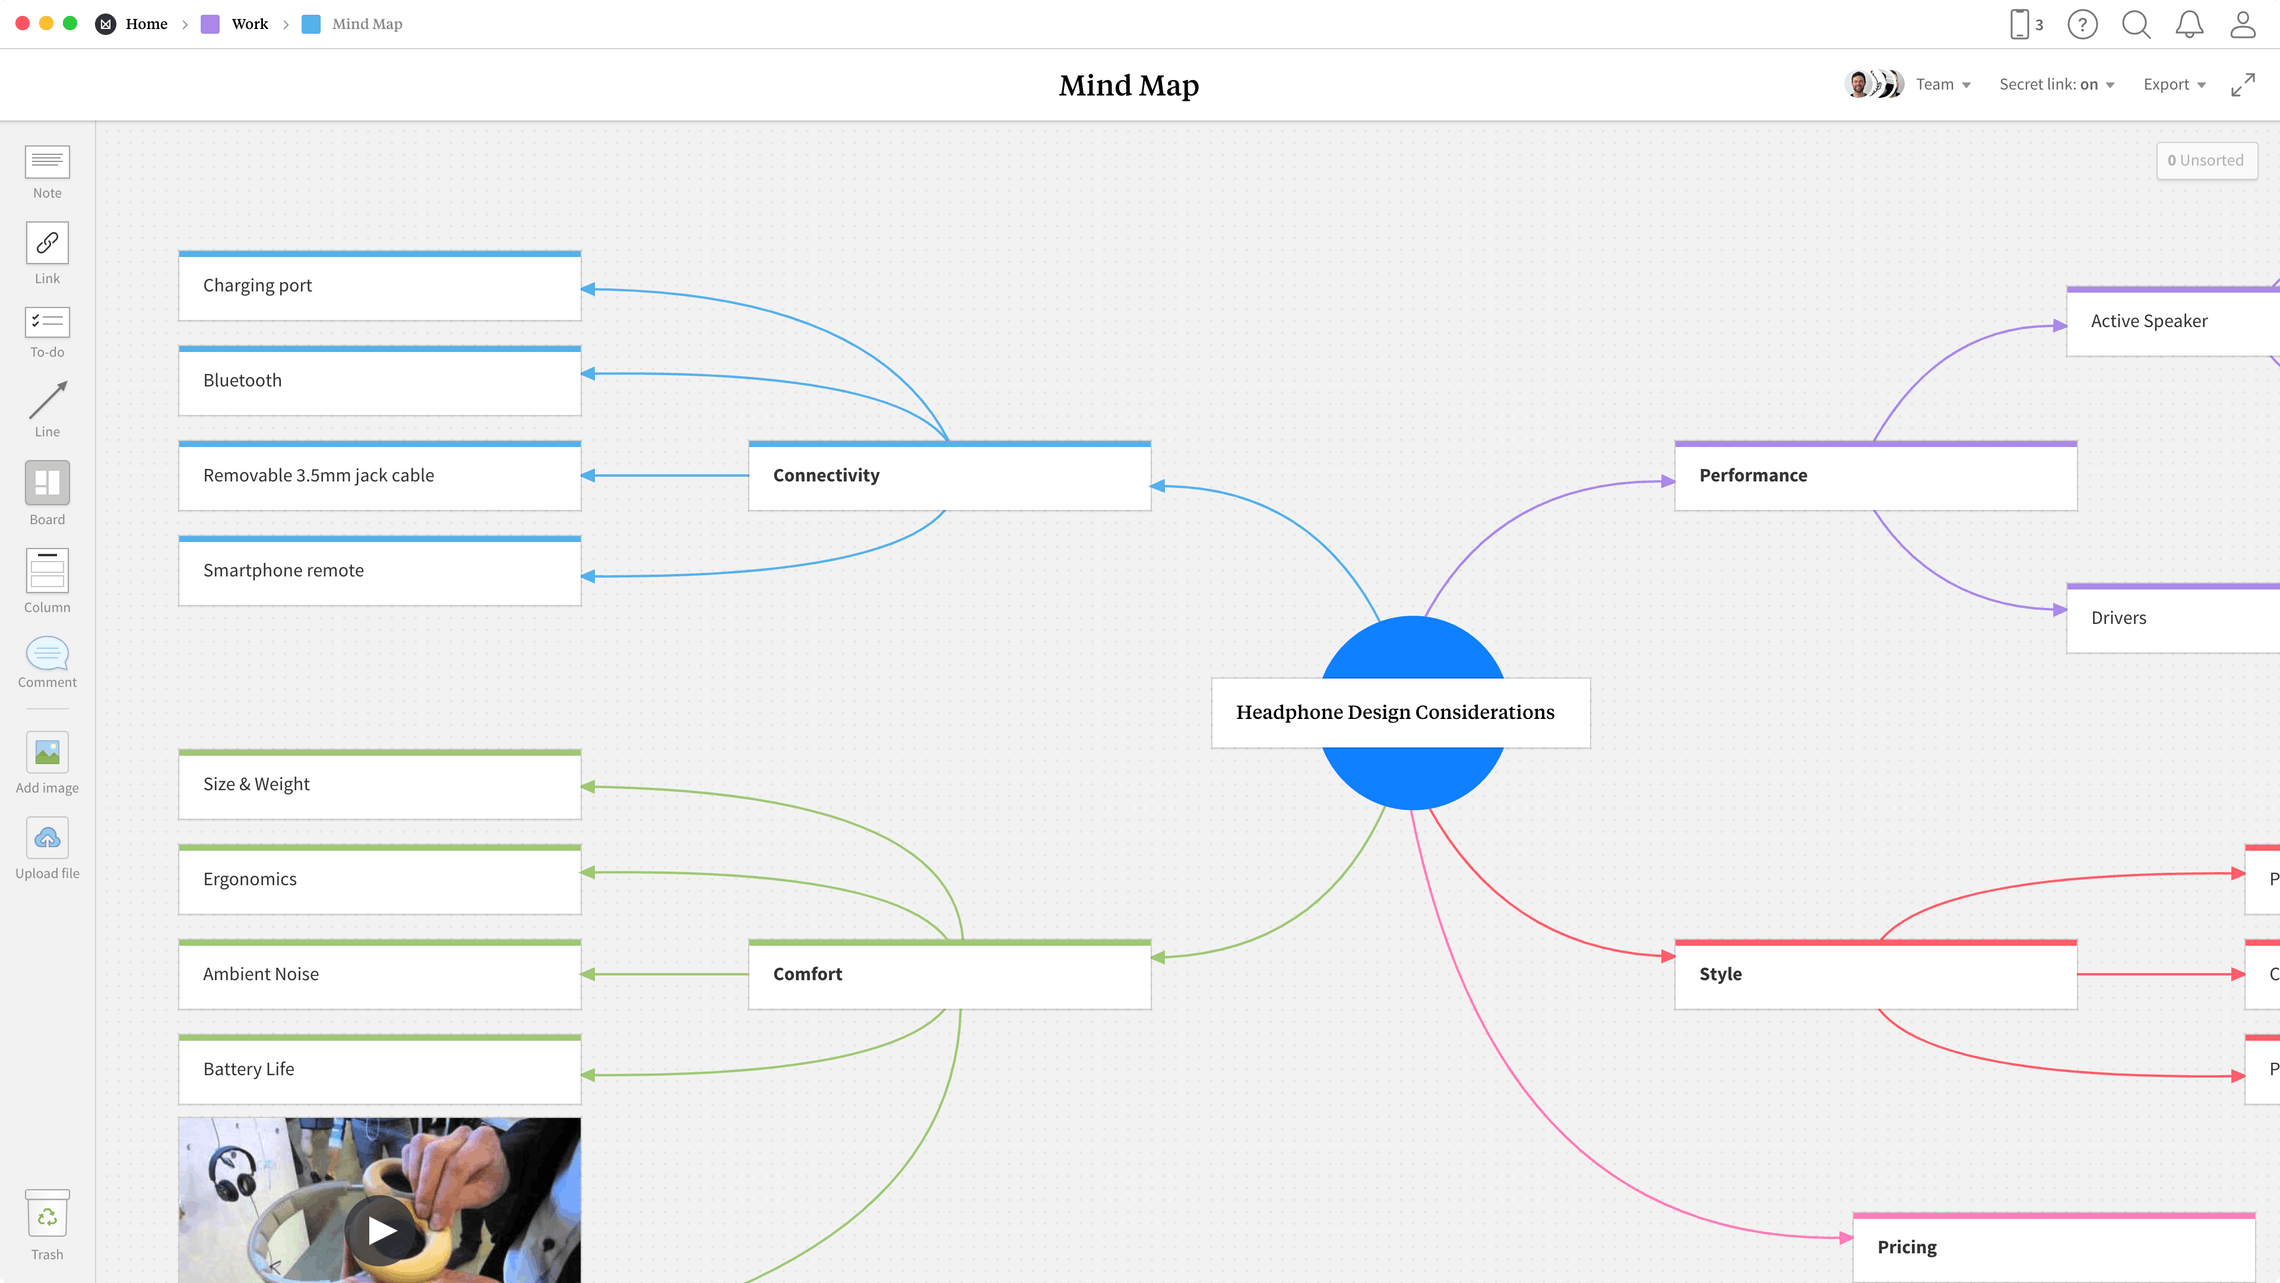 Mind Map Template, within the Milanote app